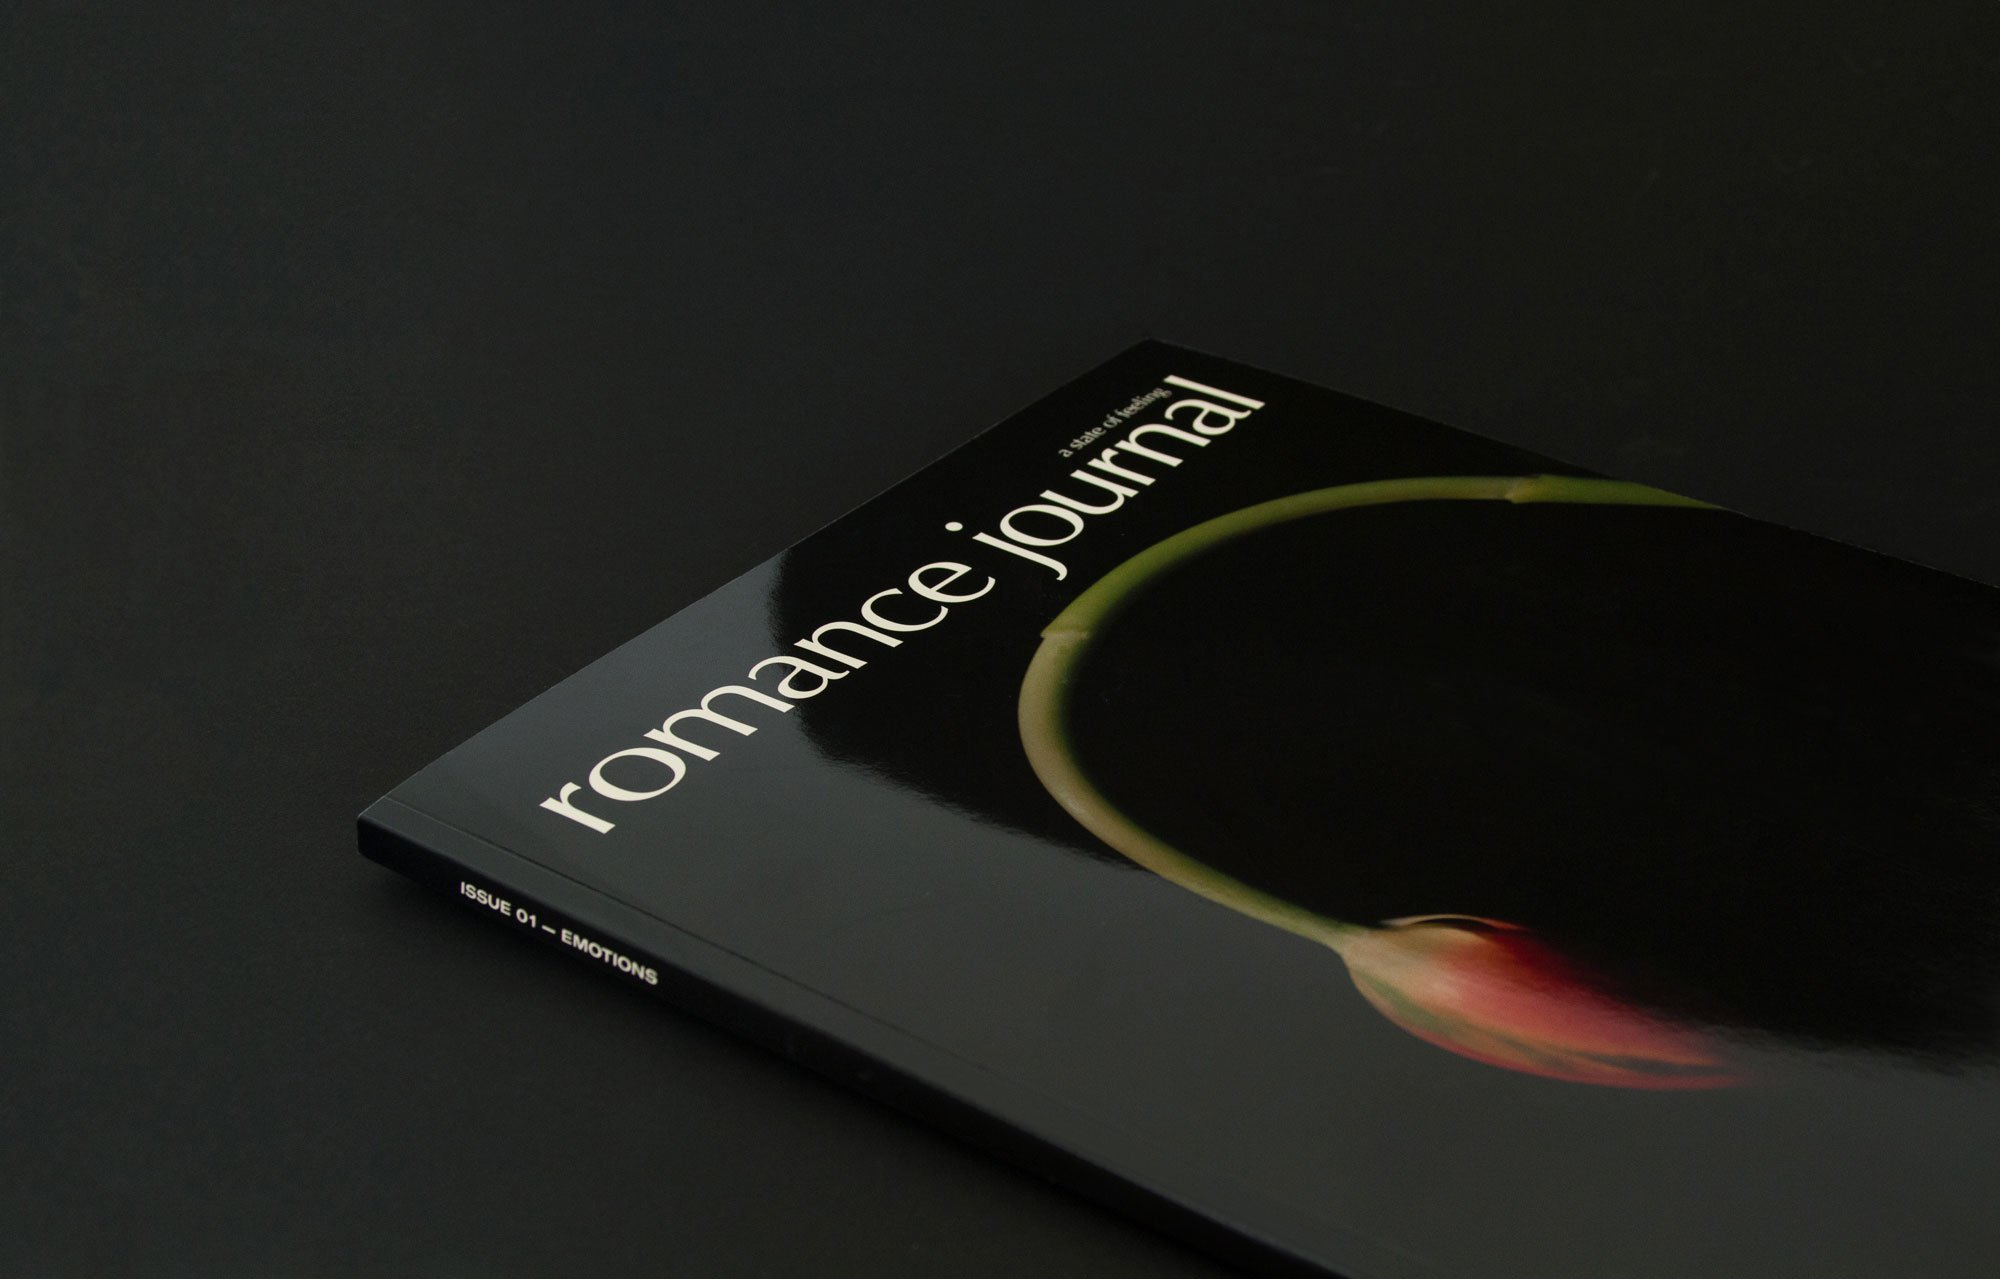 Romance Journal Issue 01 Cover –tulip bud. Publication design, art direction, print design, interviews by RoAndCo.